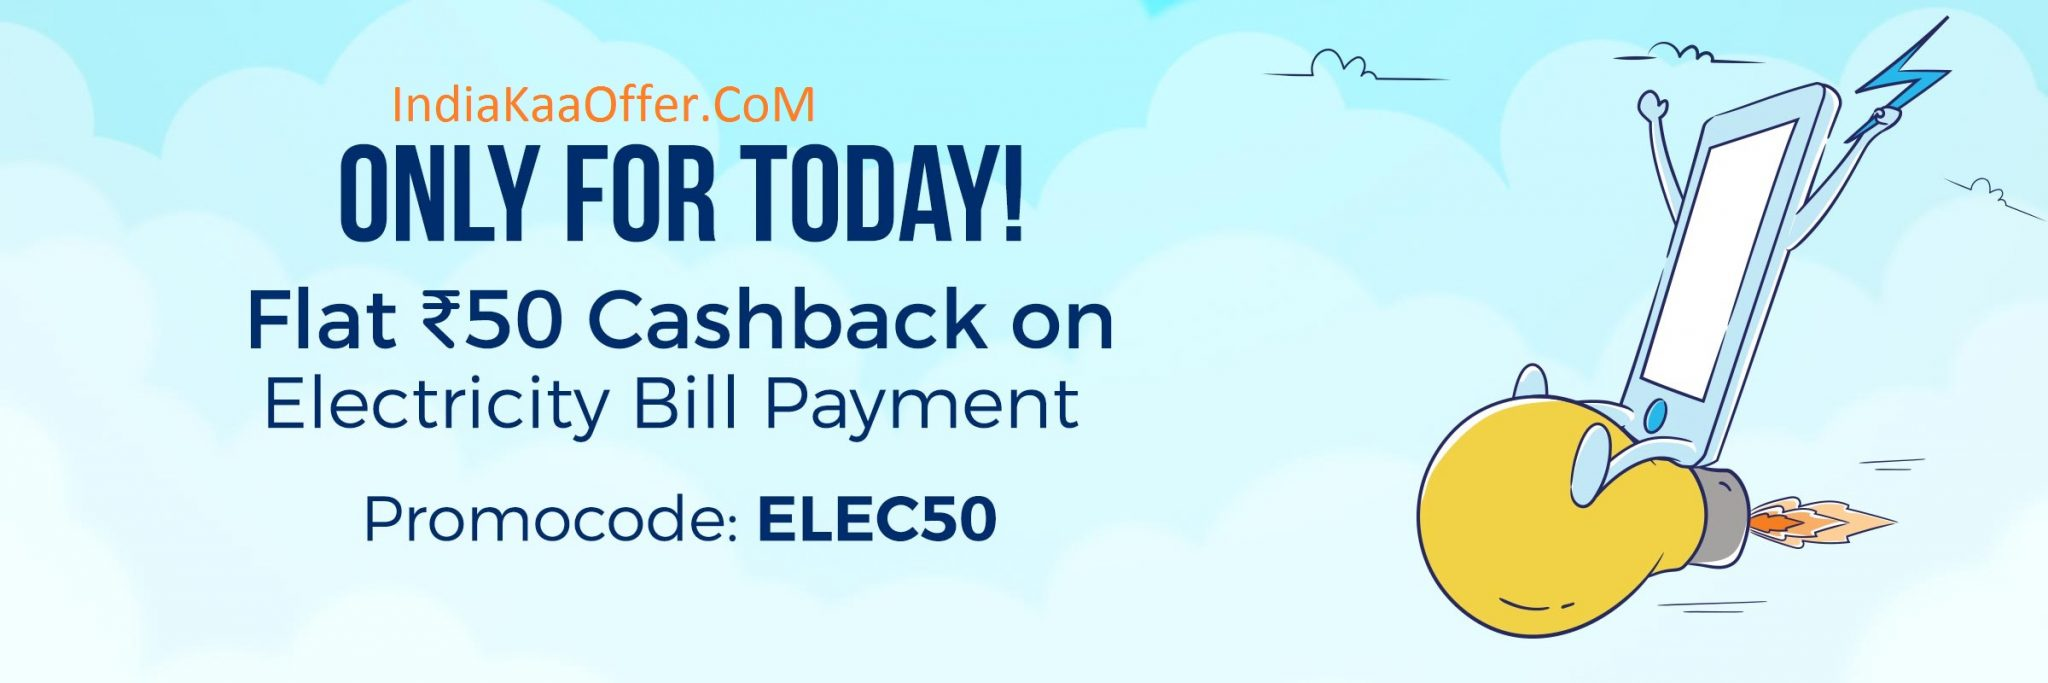 Paytm Flash Electricity Bill Payment Offer - Get Rs 50 Cashback on Rs 200 Bill Payment